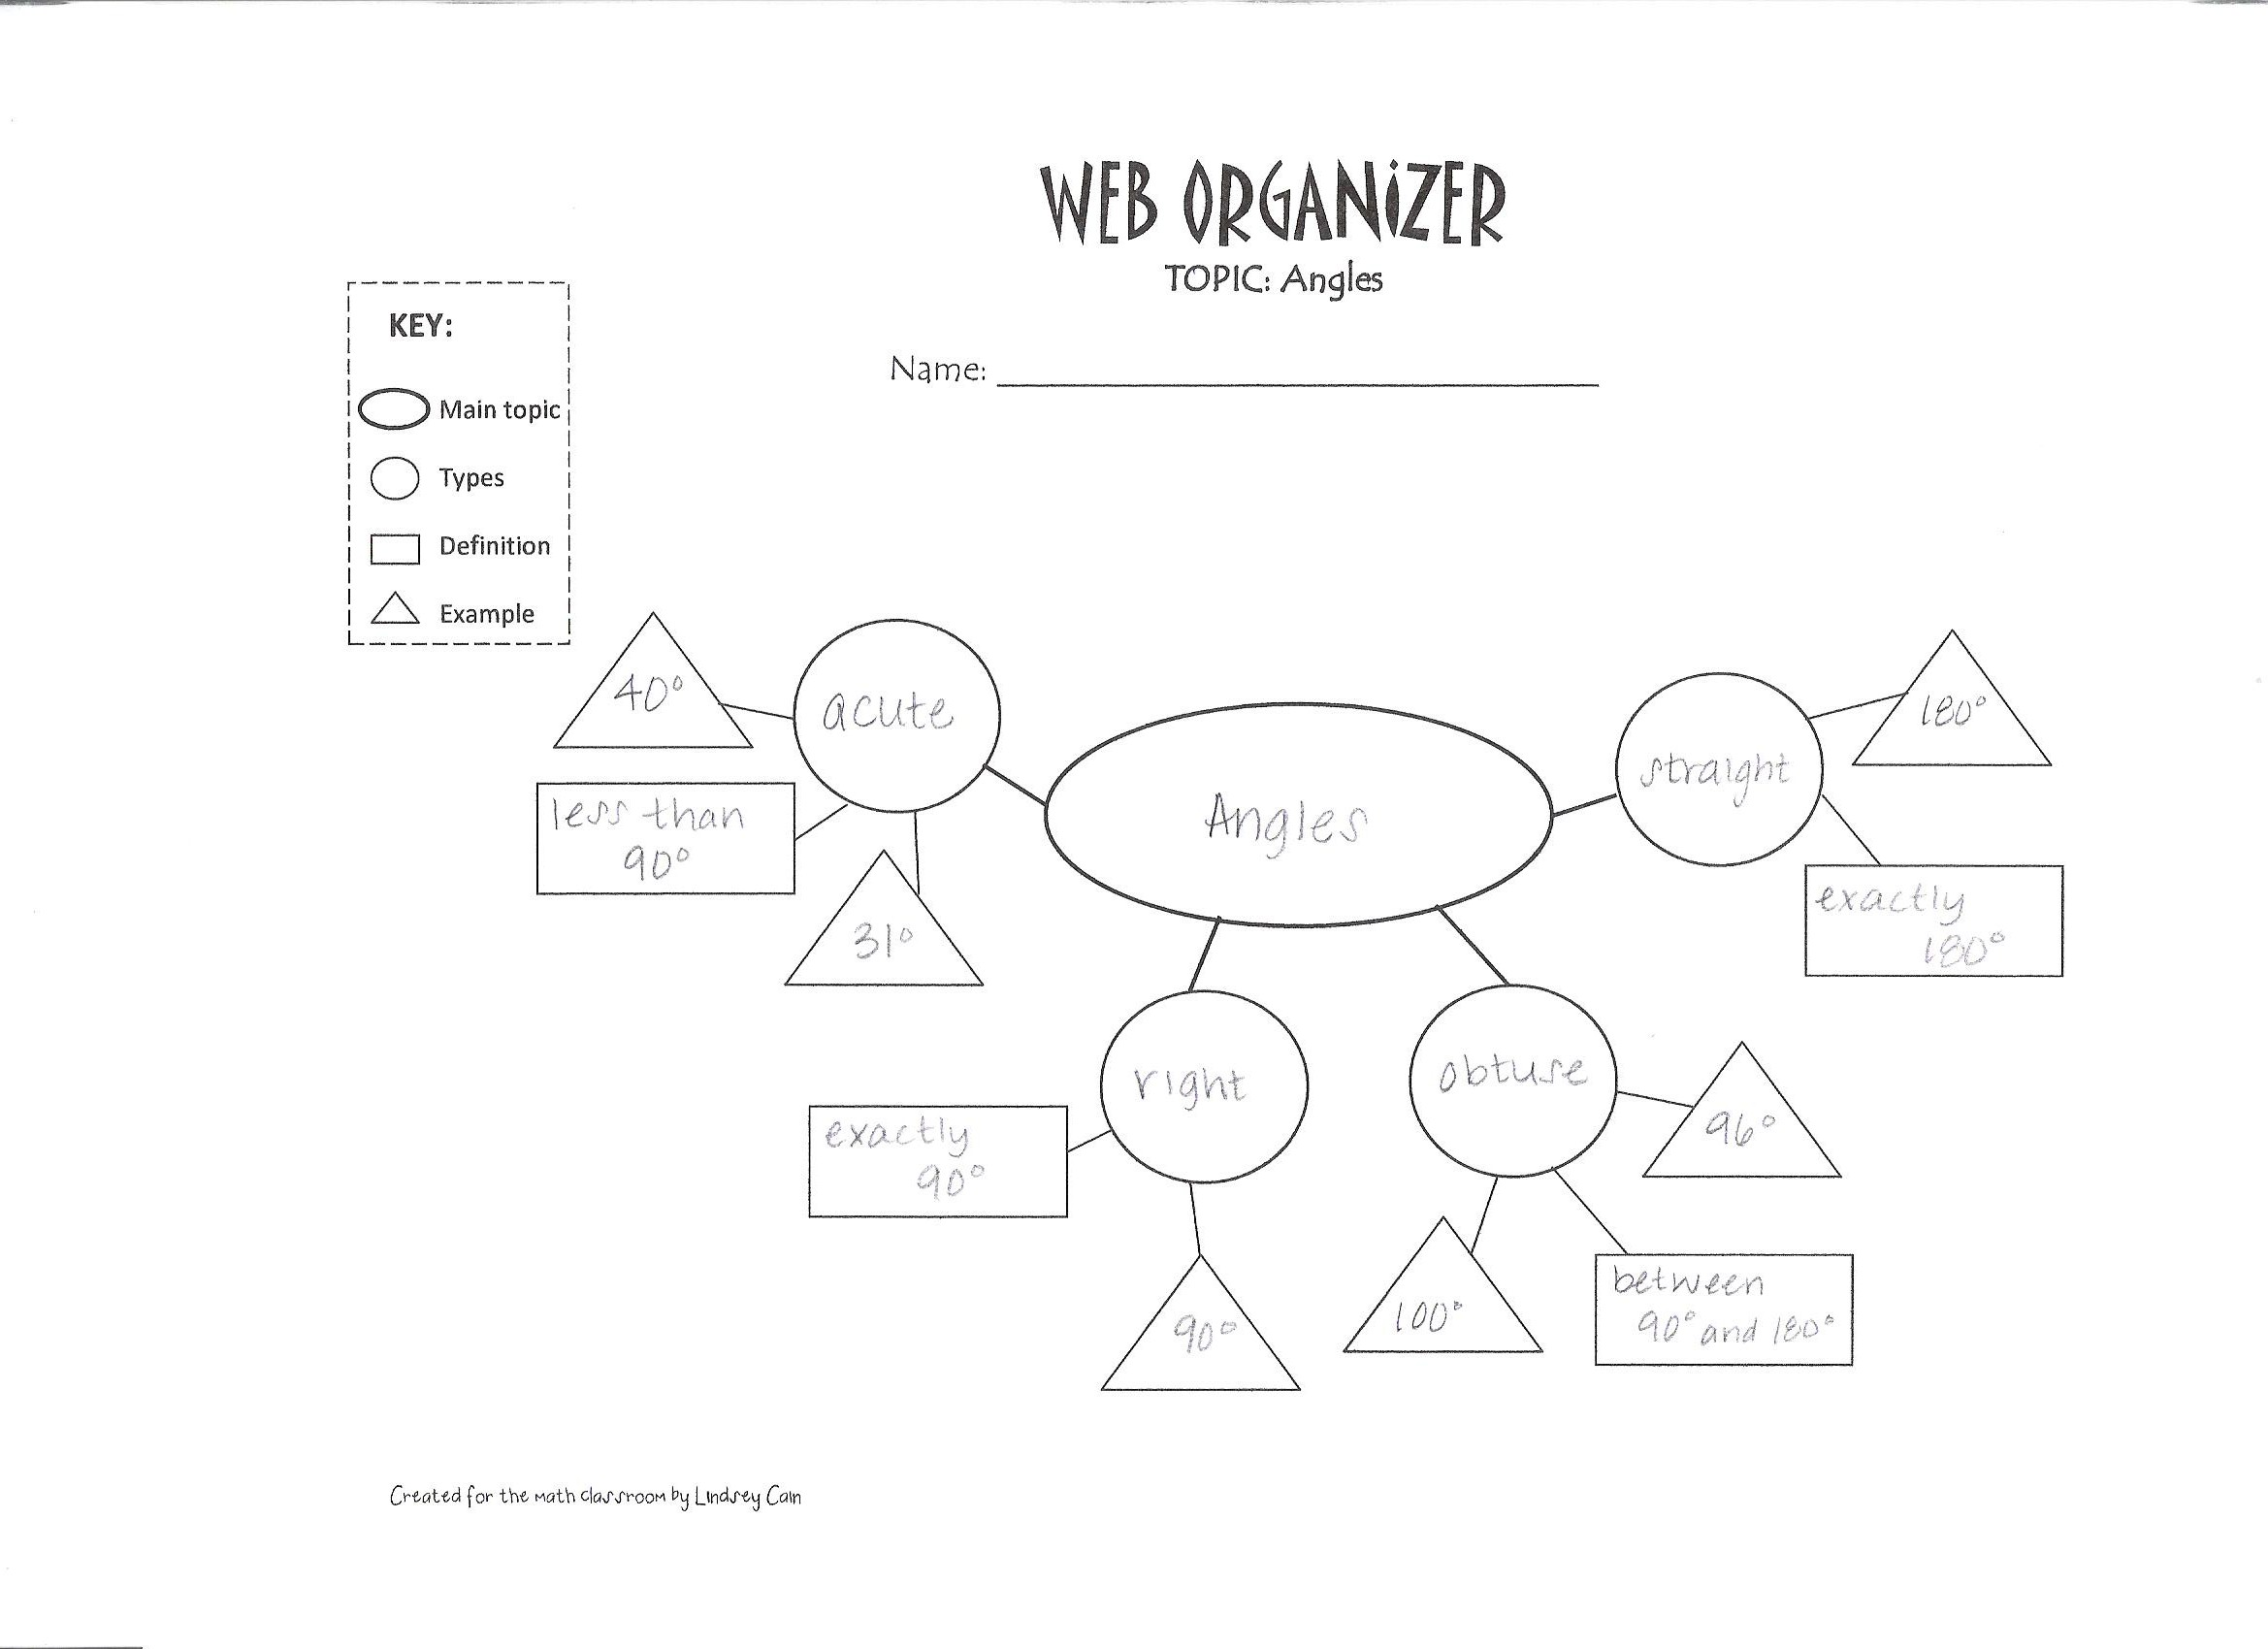 Mapping The Web Organizer